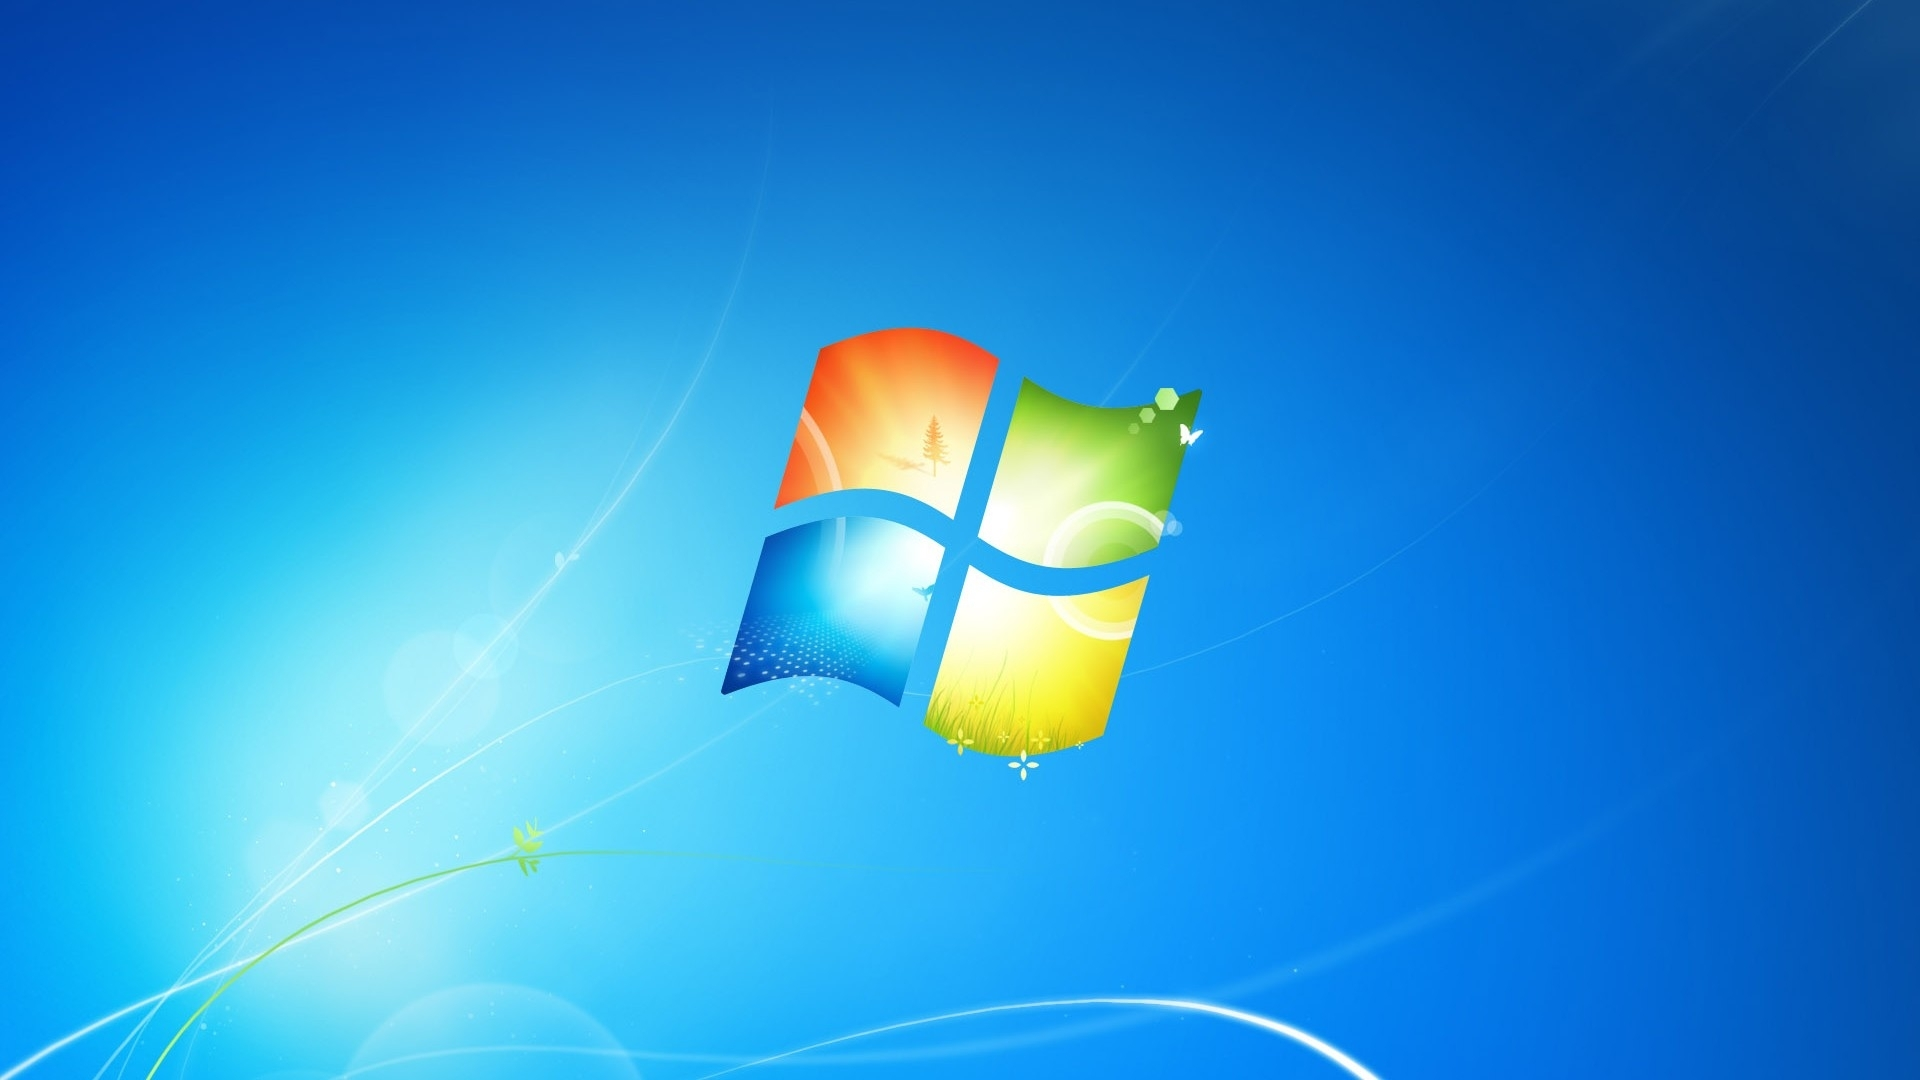 windows 7 original wallpaper 1080p wallpaper | wallpaperlepi